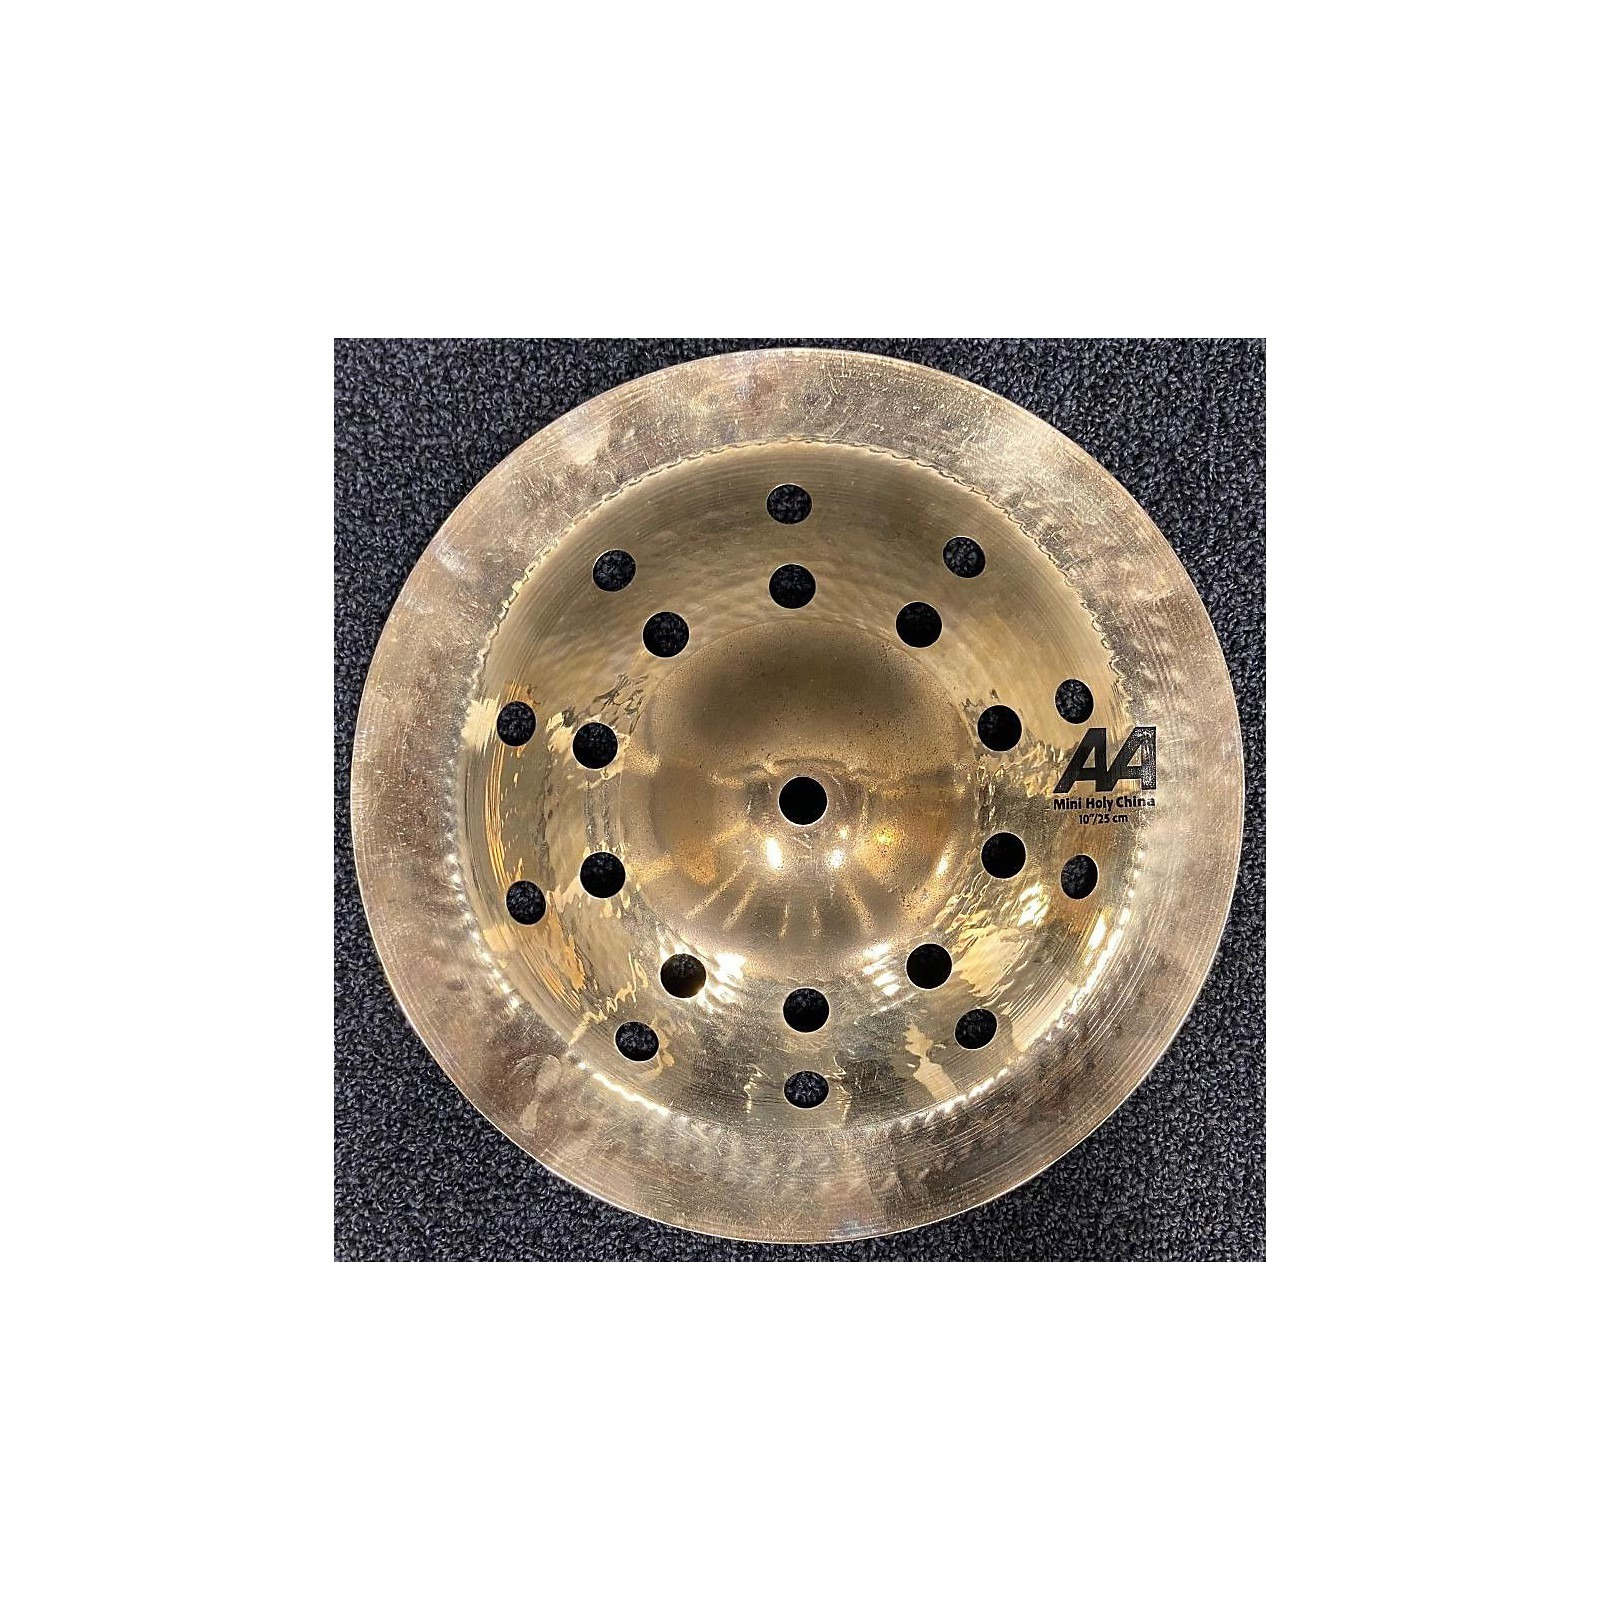 Sabian 2018 10in AA Holy China Brilliant Cymbal